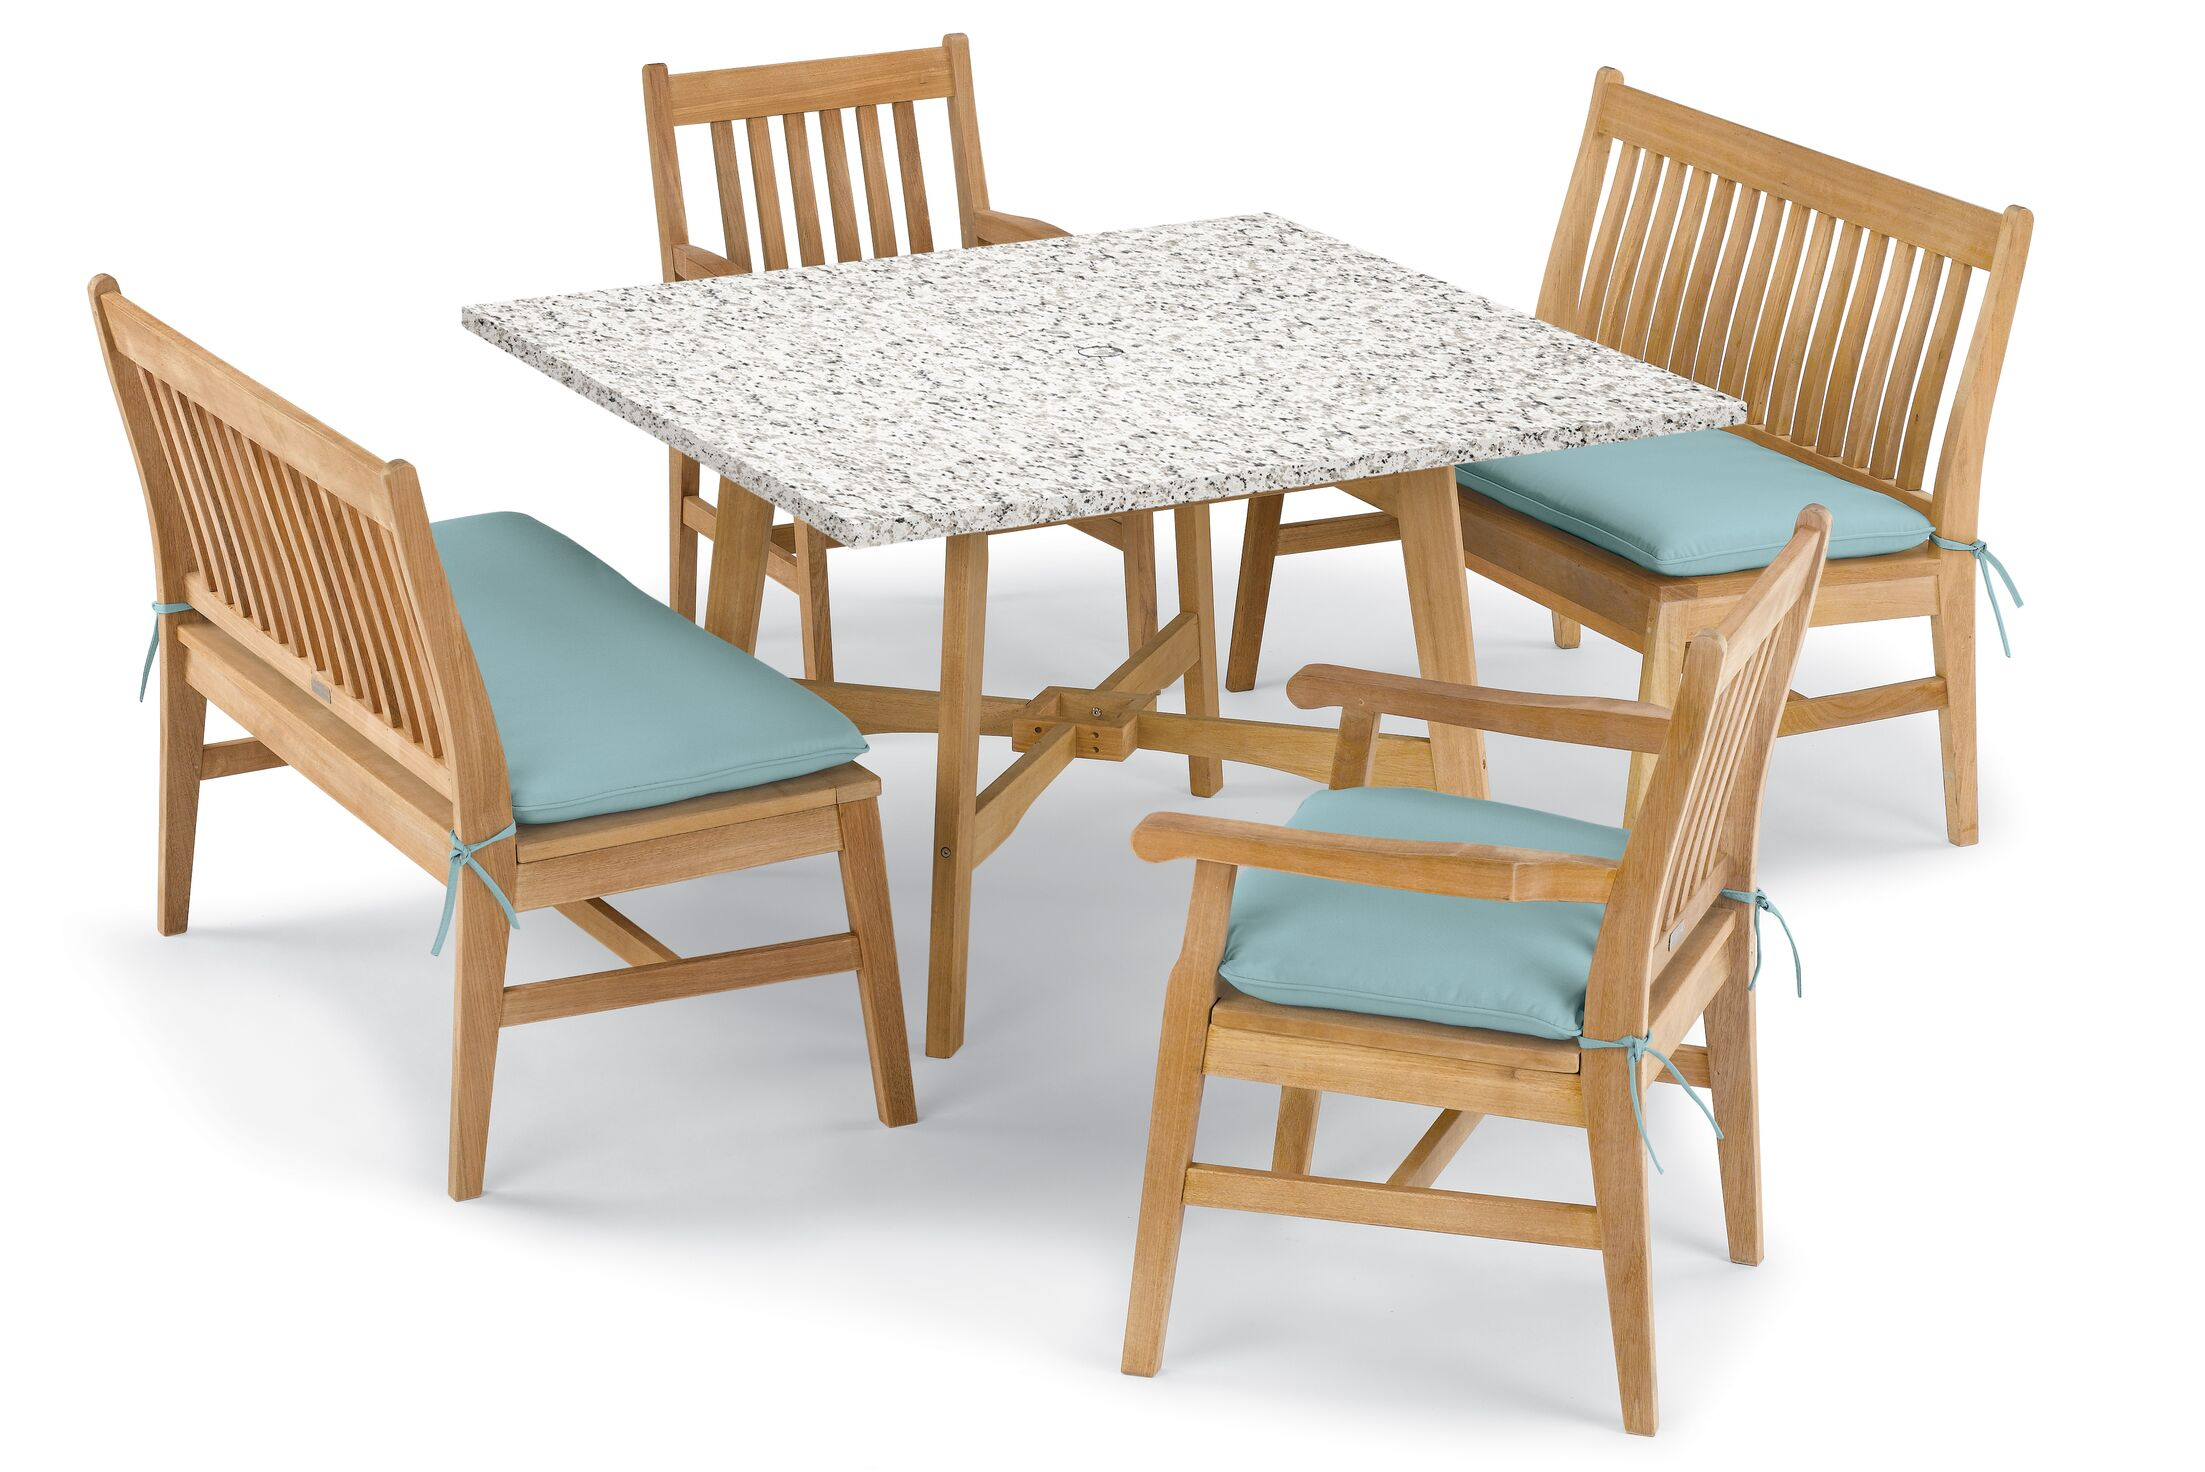 Laney 5 Piece Dining Set with Cushions Cushion Color: Canvas Mineral Blue , Table Top Color: Ash, Color: Natural